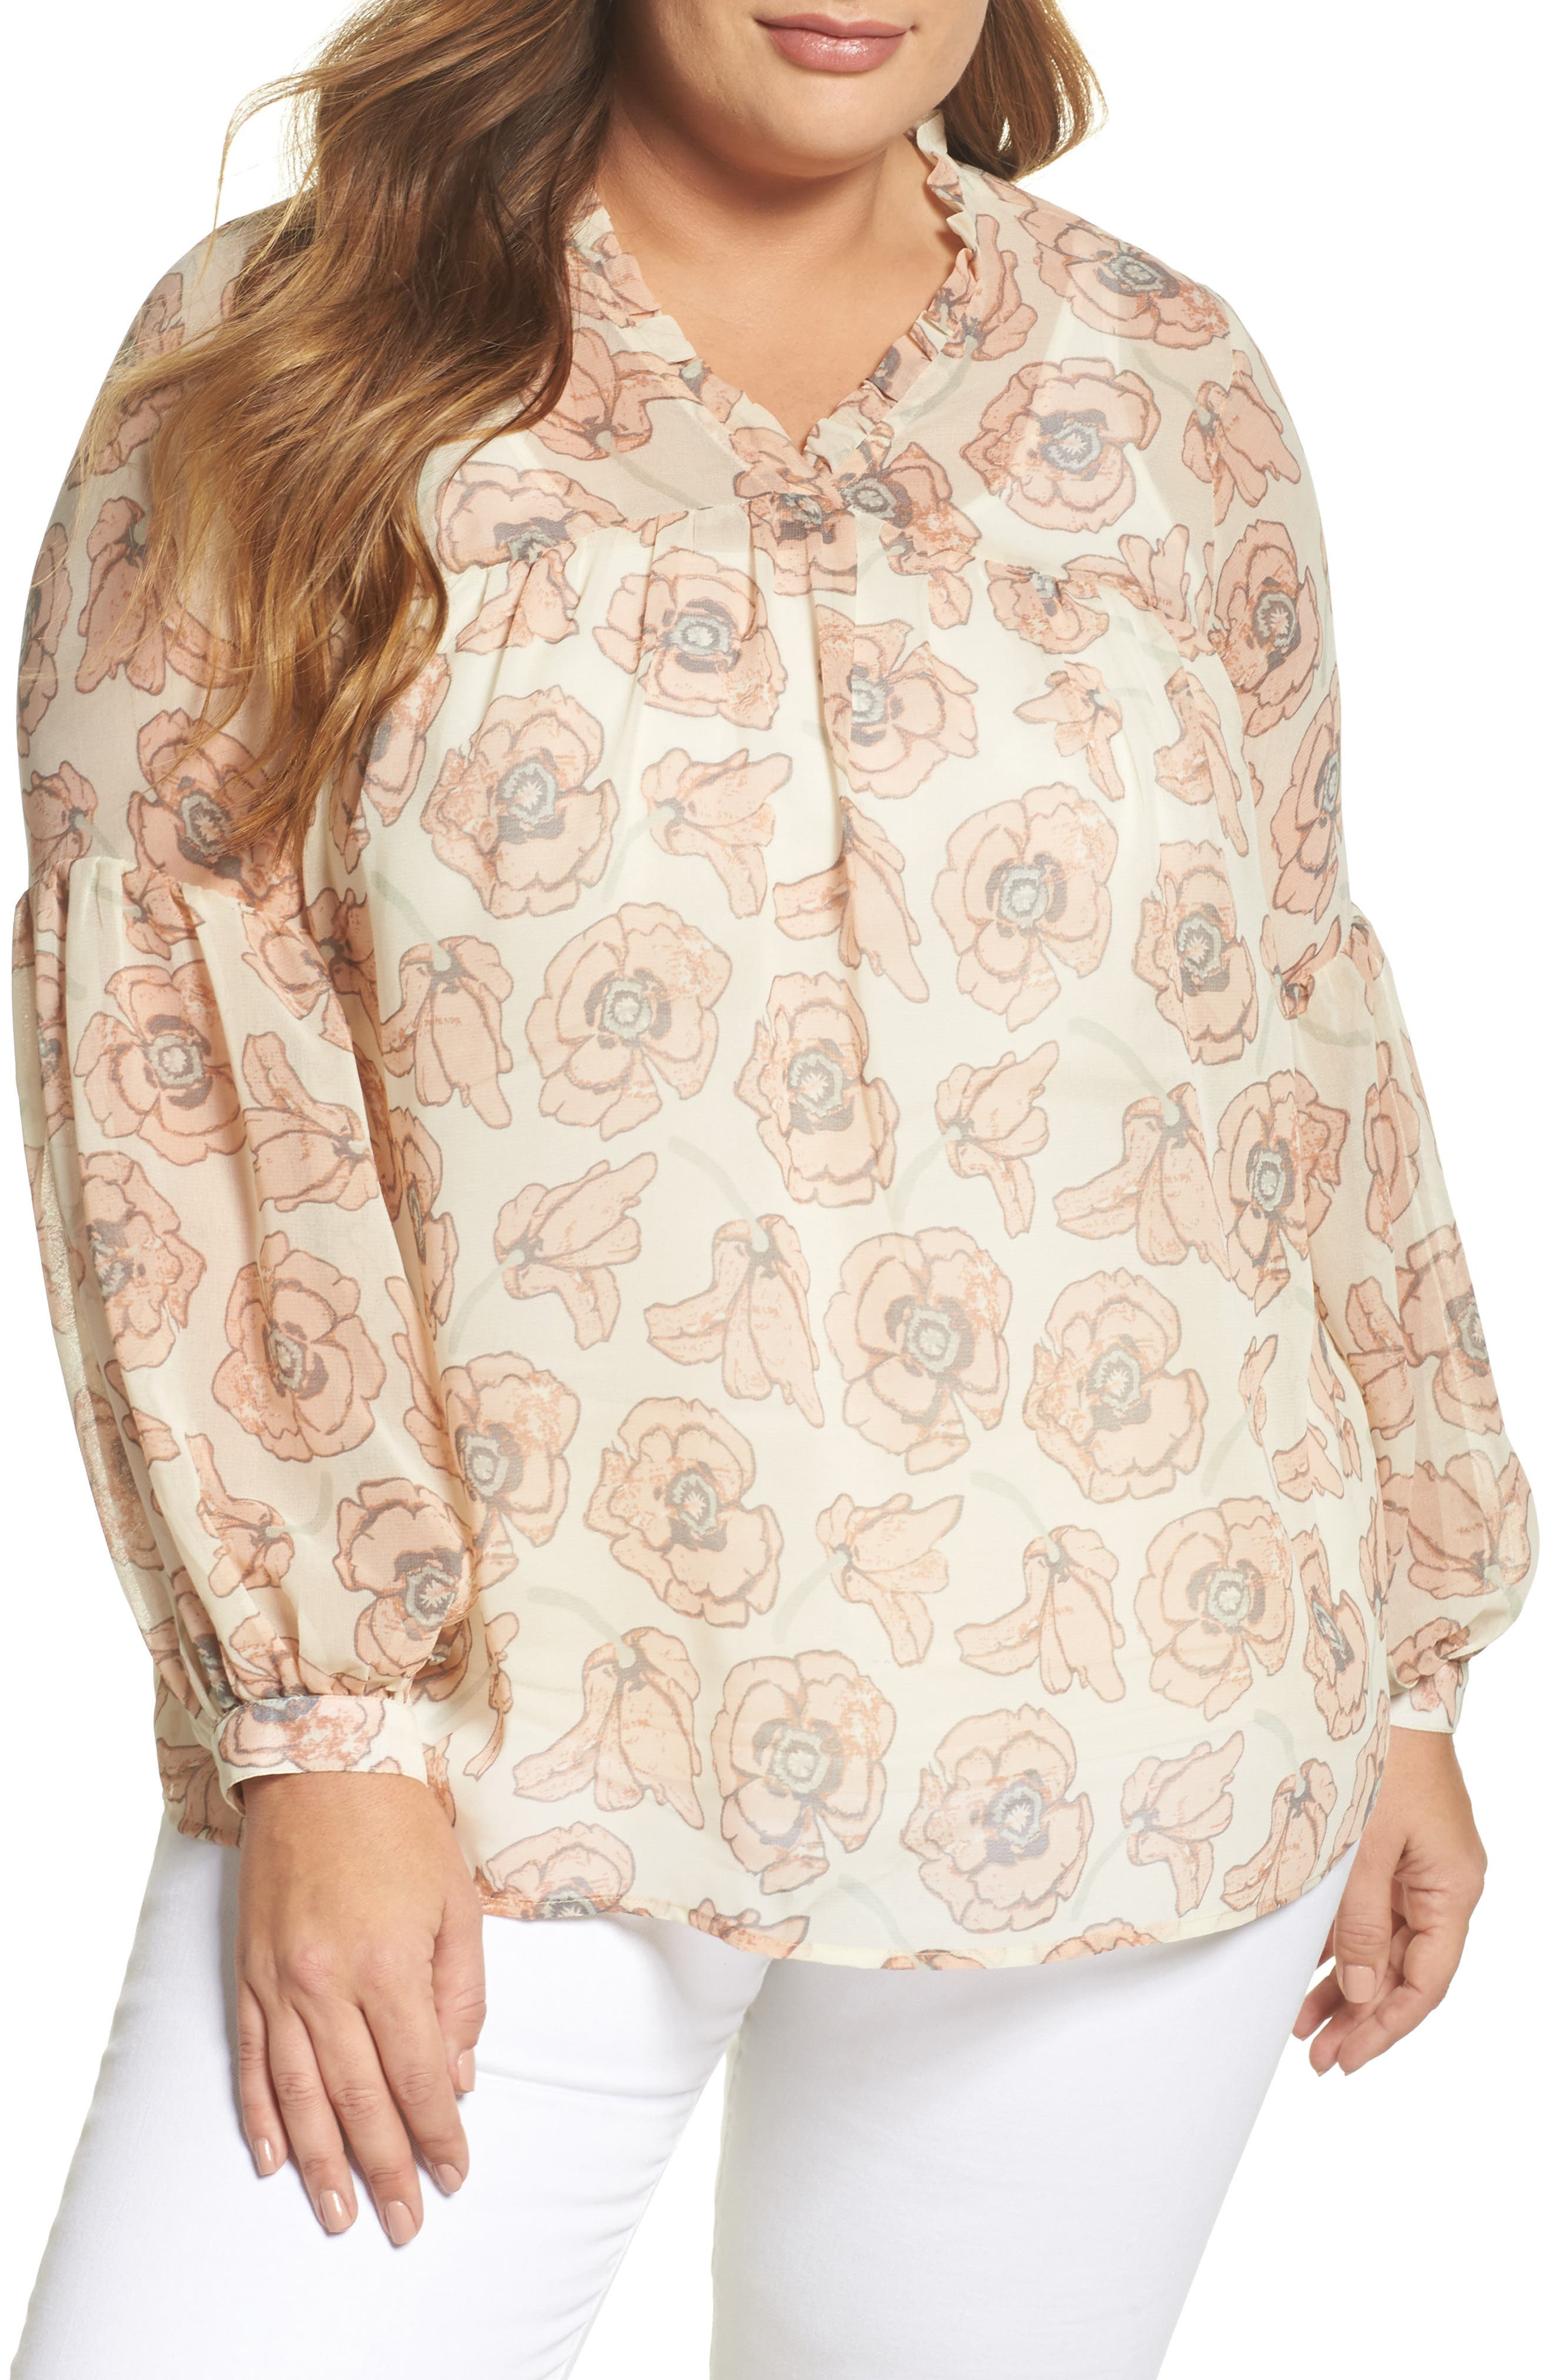 Exploded Floral Top,                             Main thumbnail 1, color,                             690